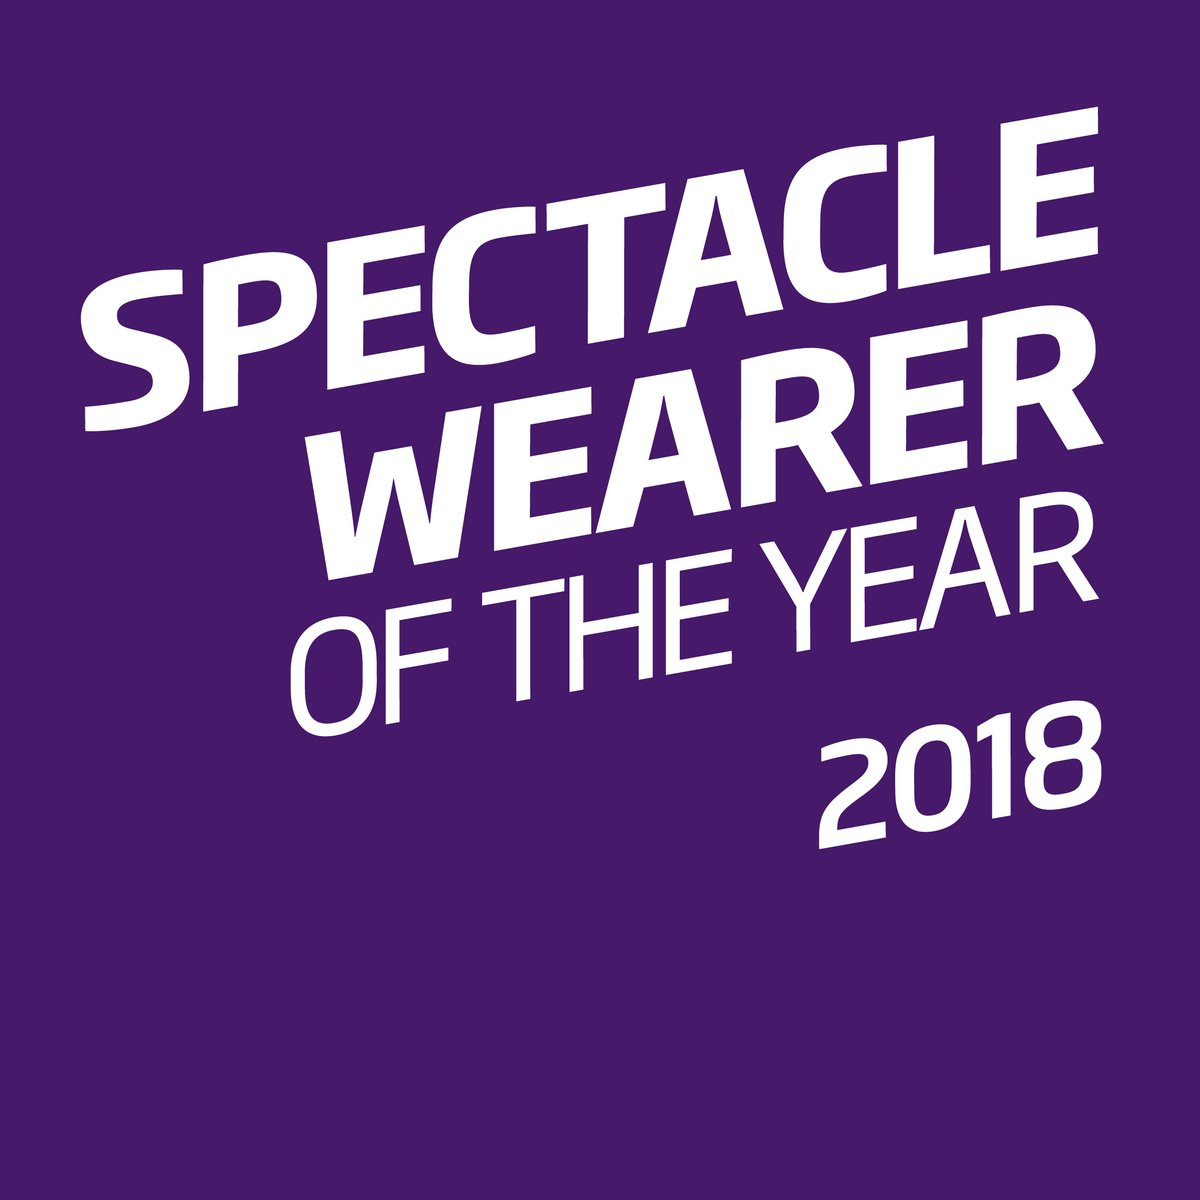 One week to go till @Specsavers Spectacle Wearer Of The Year 2018. Were so excited! #LoveGlasses👓